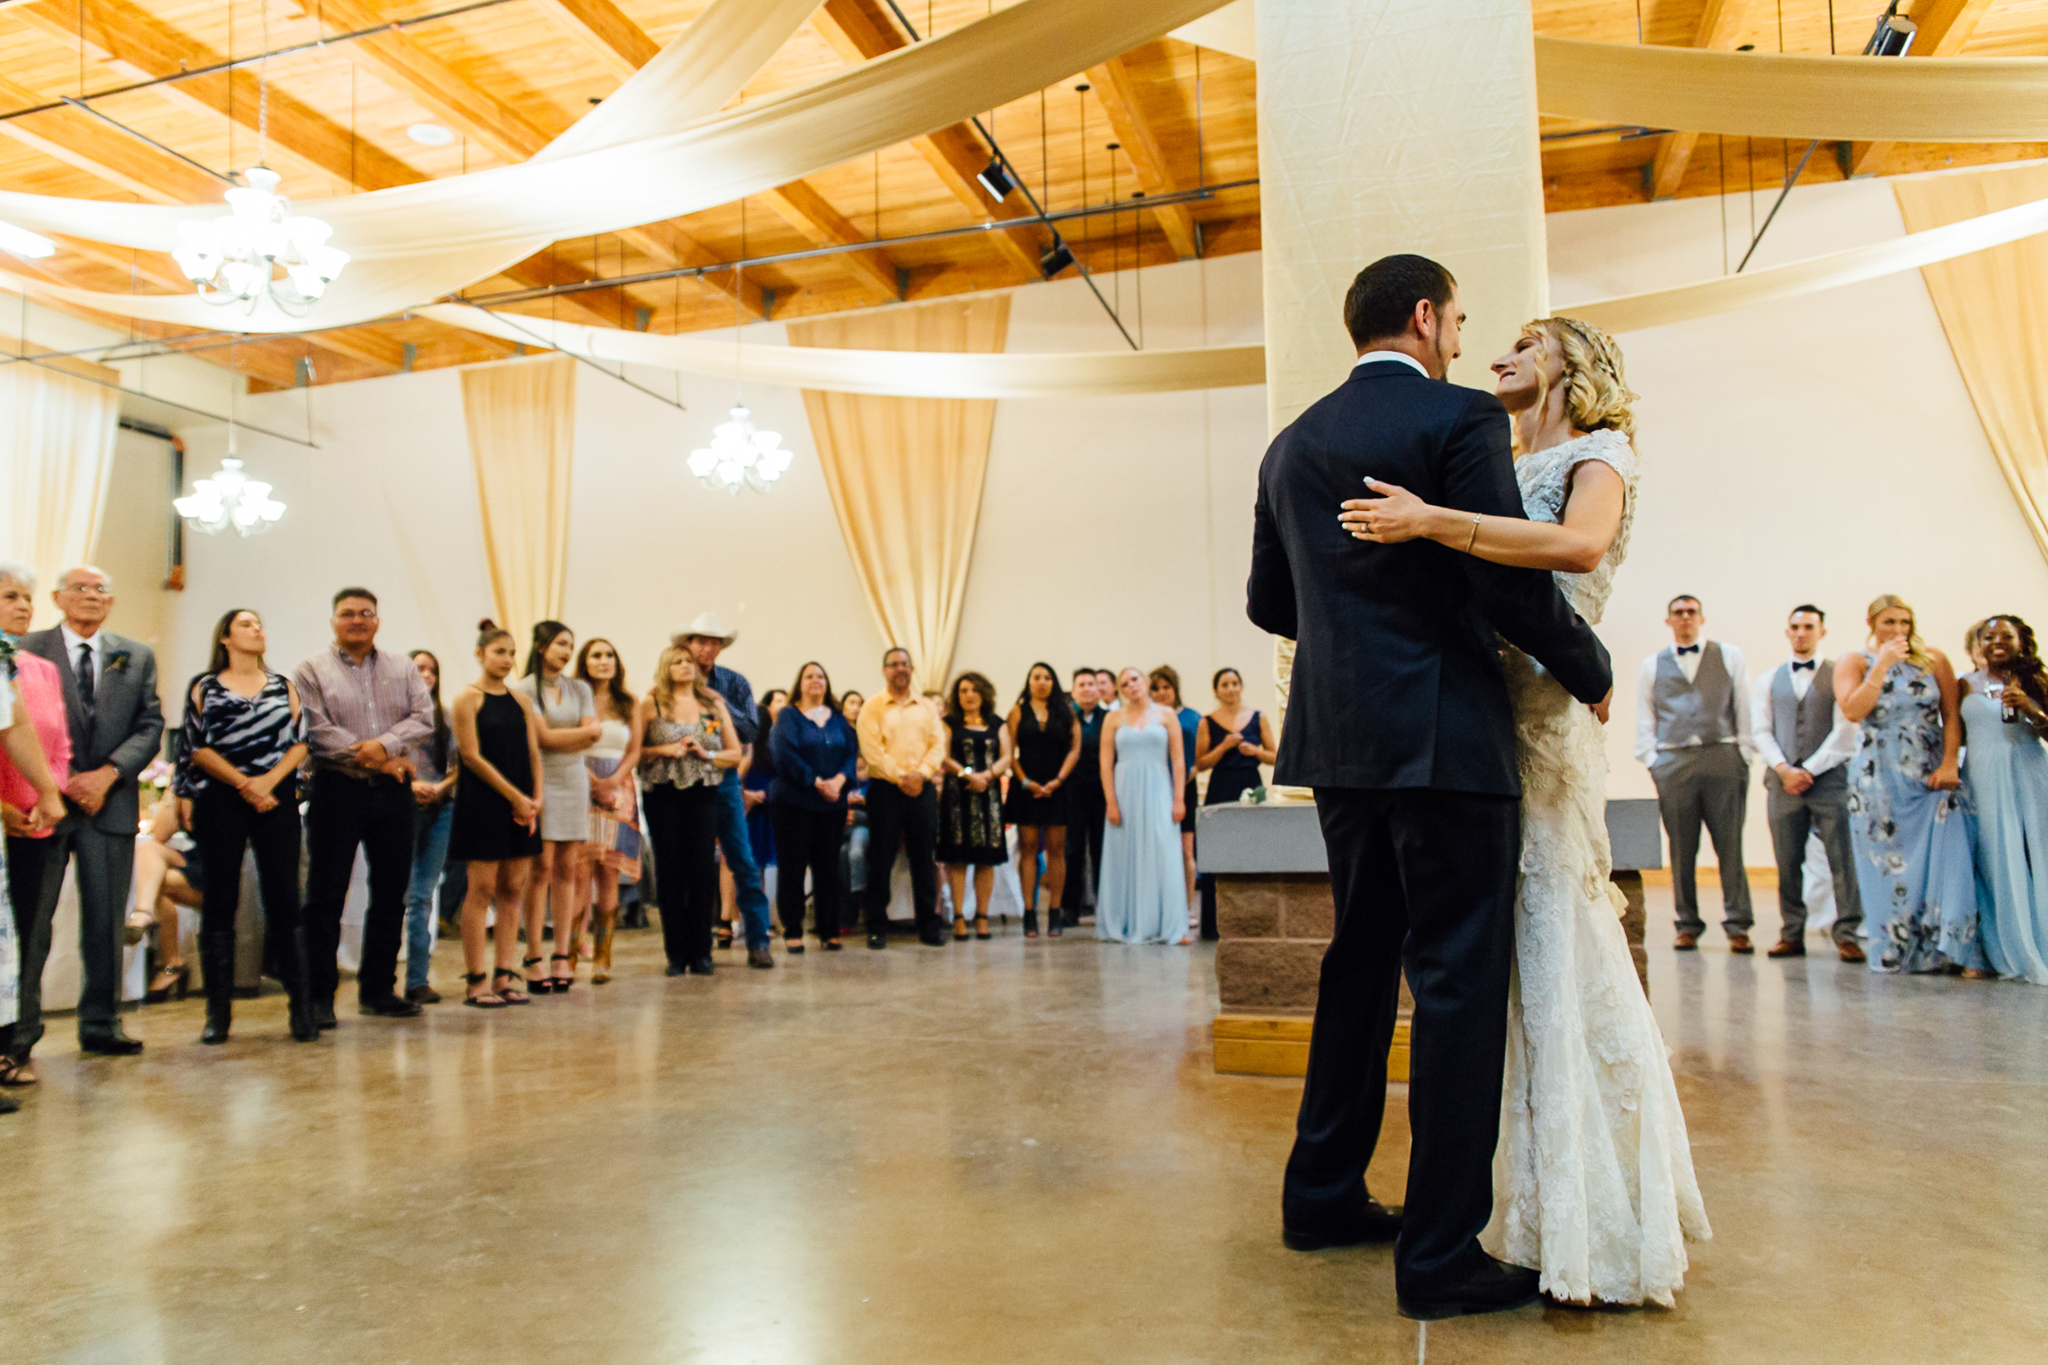 nm-farm-and-ranch-wedding-59.jpg